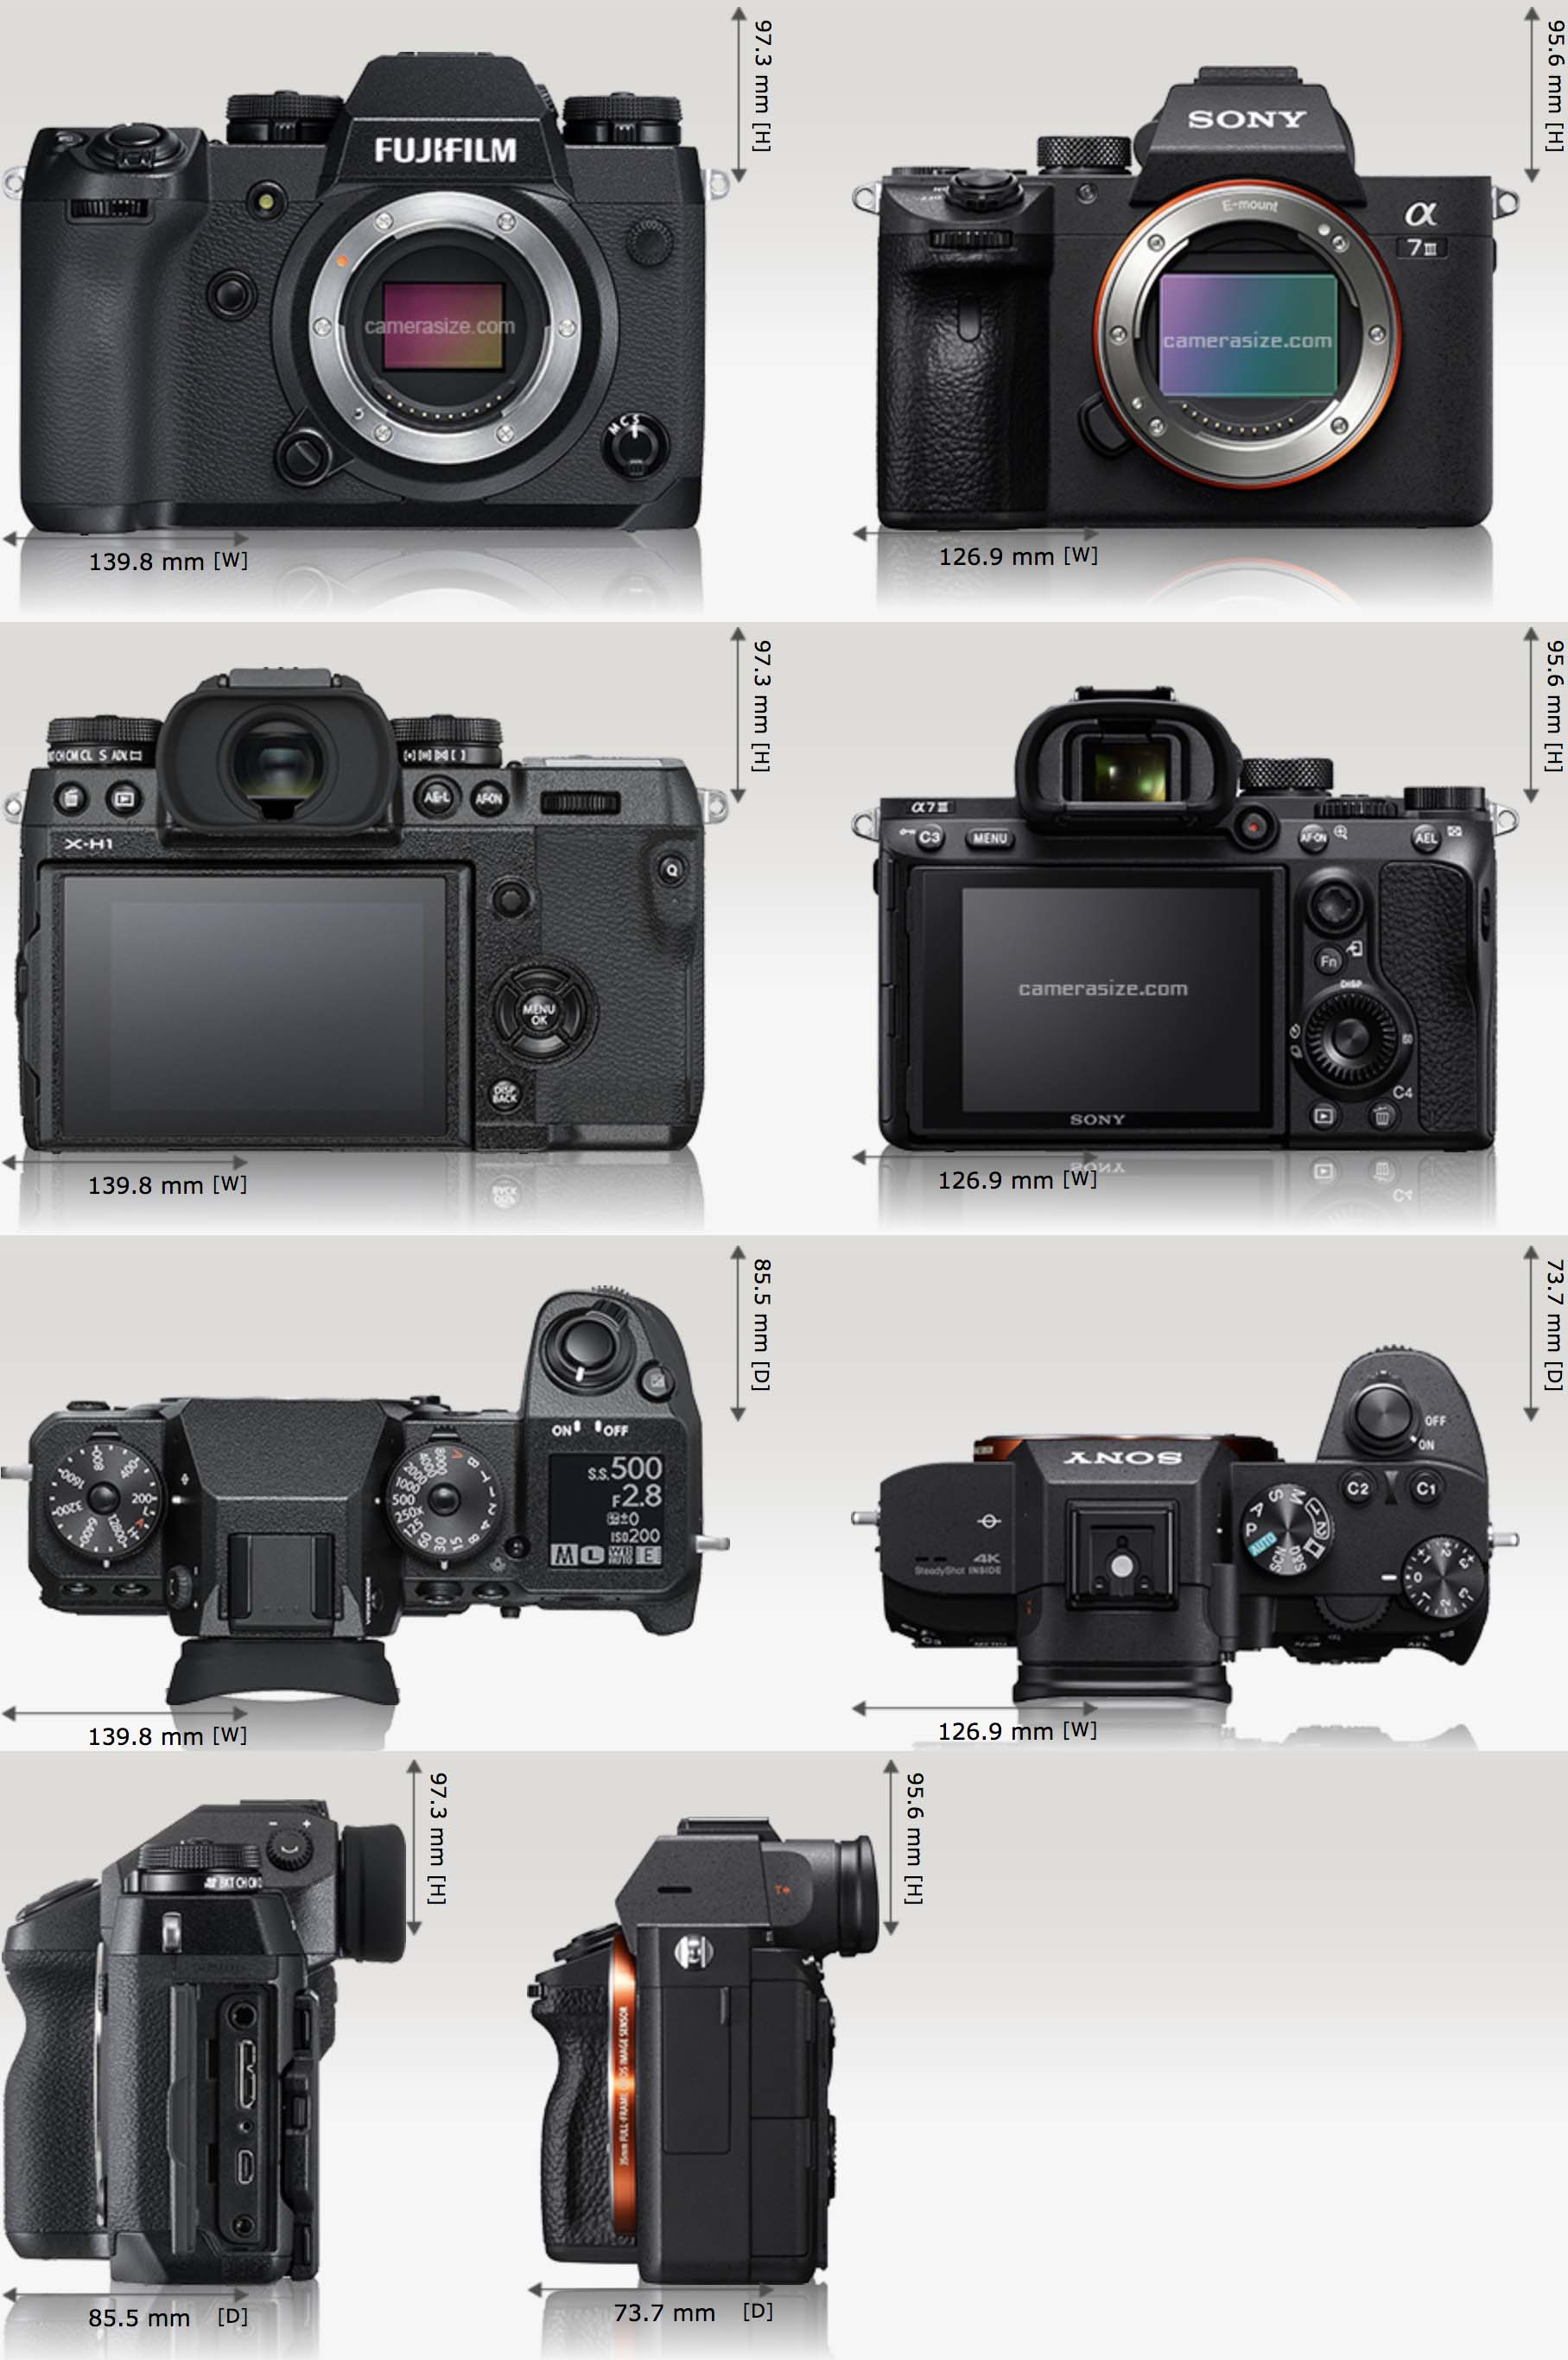 Will The Release of The Sony a7III Affect The Launch of The Fujifilm